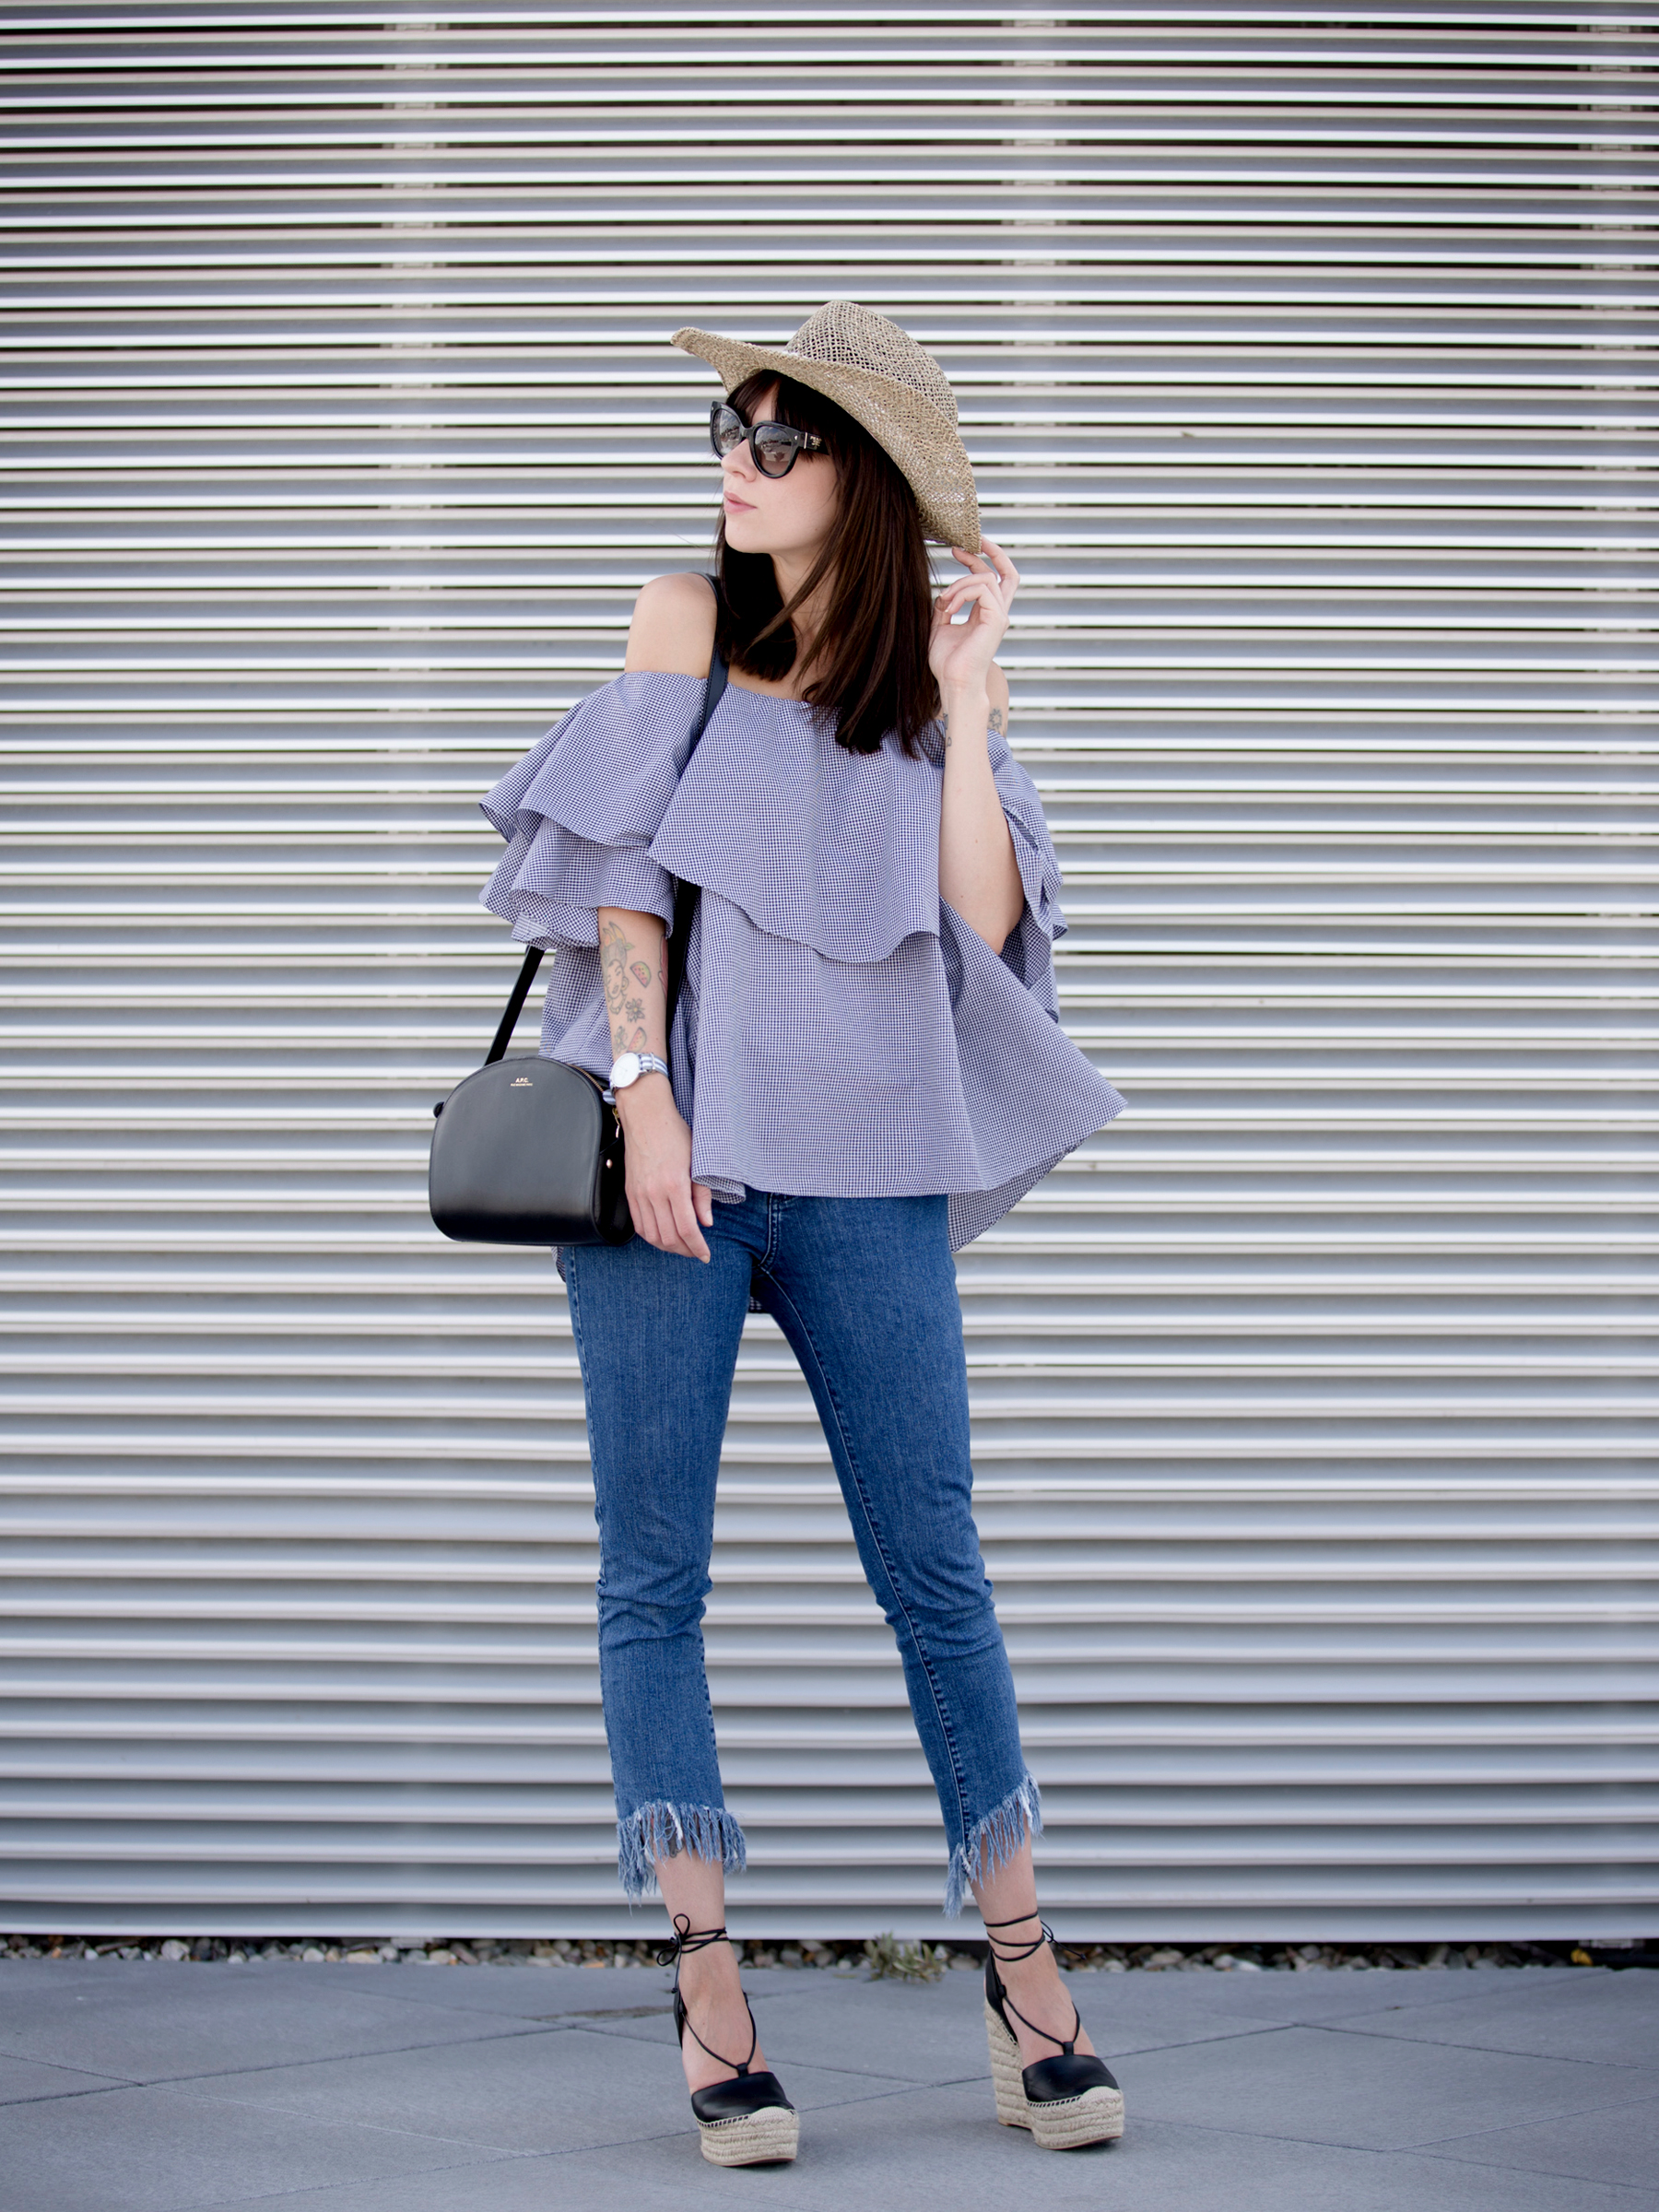 kapten&son watch mlm label off-shoulder blouse blue fringe jeans straw hat summer ootd look styling fashionblogger berlin modeblog cats & dogs ricarda schernus styleblogger 6